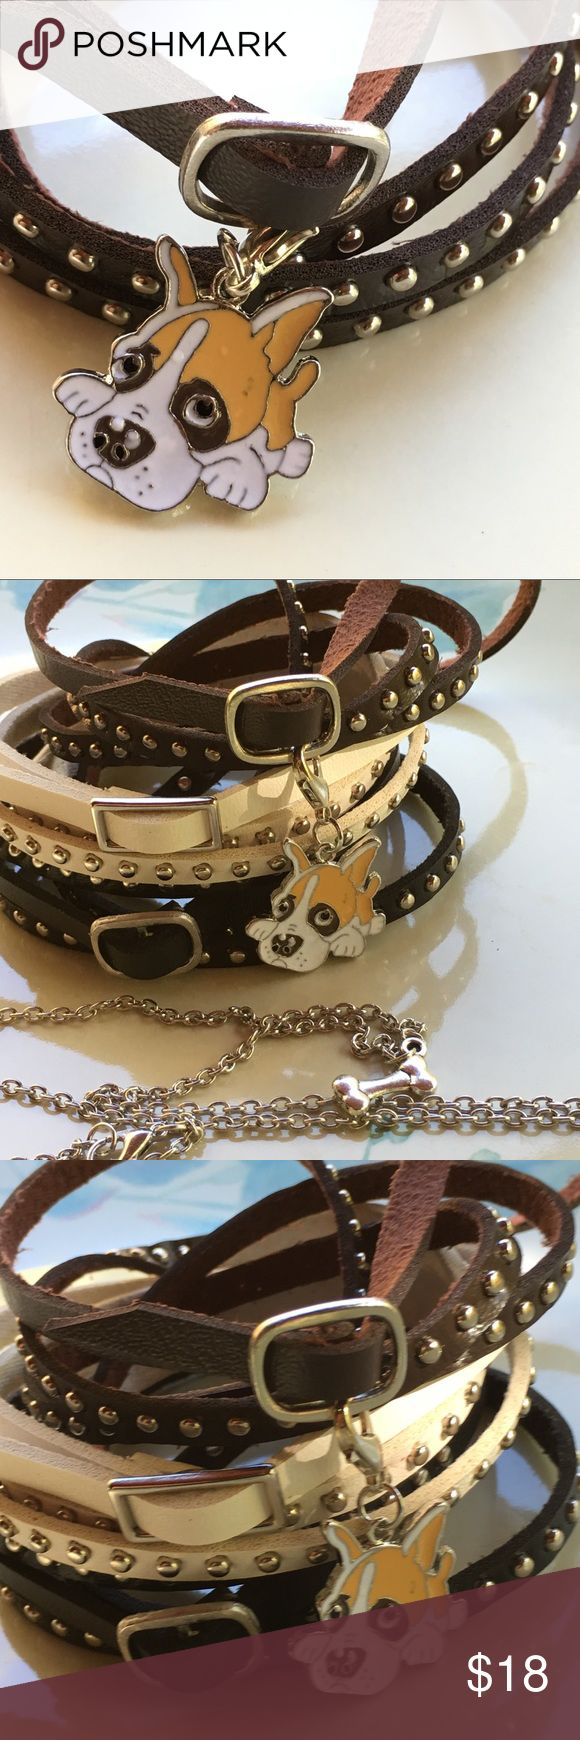 """Goofy dog 🐶 bulldog enamel clip Puppy dog enamel clip 🐶 on leather bracelet/ choker or  silver colored chain. Choose 20"""" silver colored chain🐾 OR 🐾 White, brown or Black strap leather with silver colored metal accents and buckle. Leather bracelet/choker is  approx 36"""". 🐾🐾IF you only want the clip charm, choose CHARM ONLY and bid $10. Cute dog could be a bulldog, pitt bull, boxer any dog you might know. (I think it looks like me!) 🐕🐾Fun addition for a goth/ punk  look or just to wear…"""